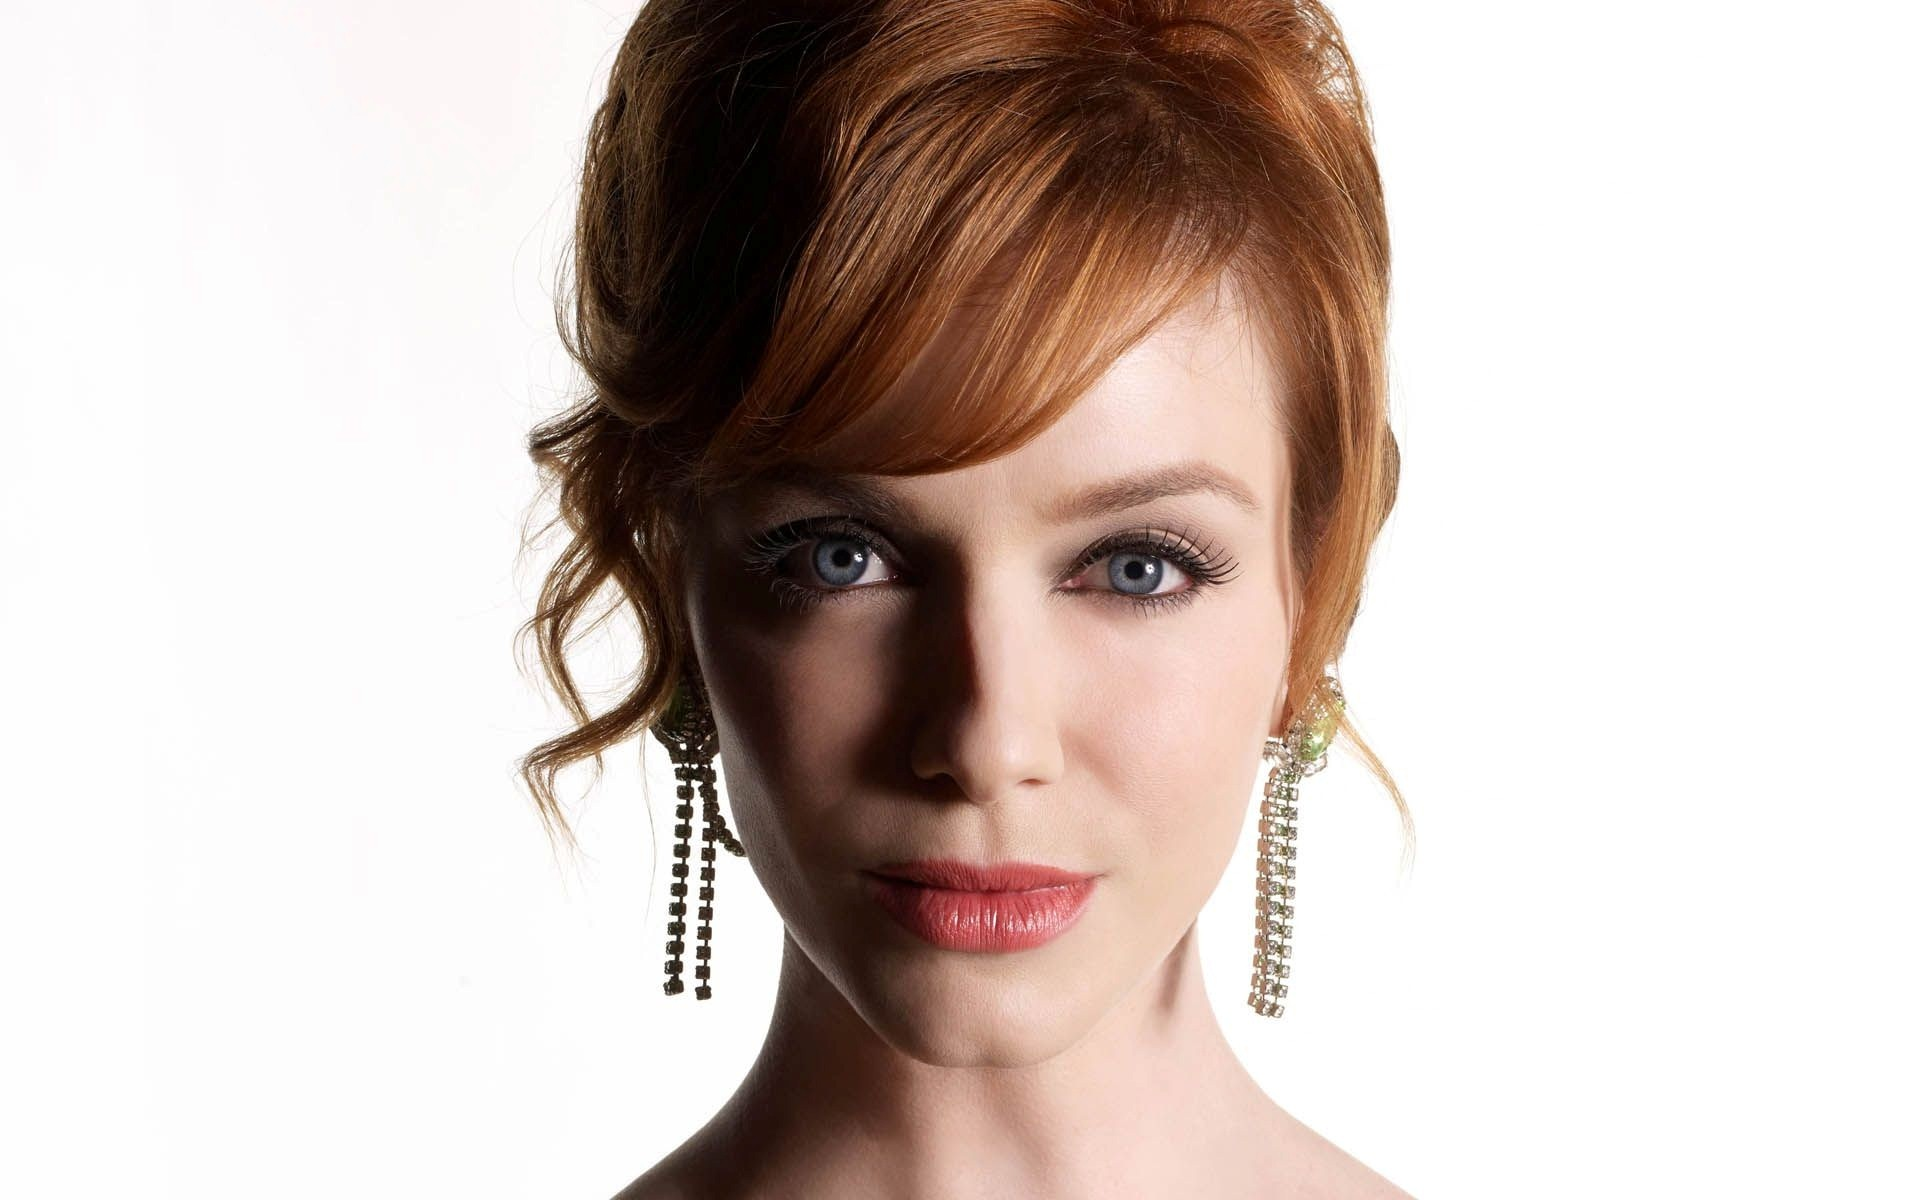 Christina Hendricks With Long Ear Jewellery Wallpaper HD Wallpapers 1920x1200